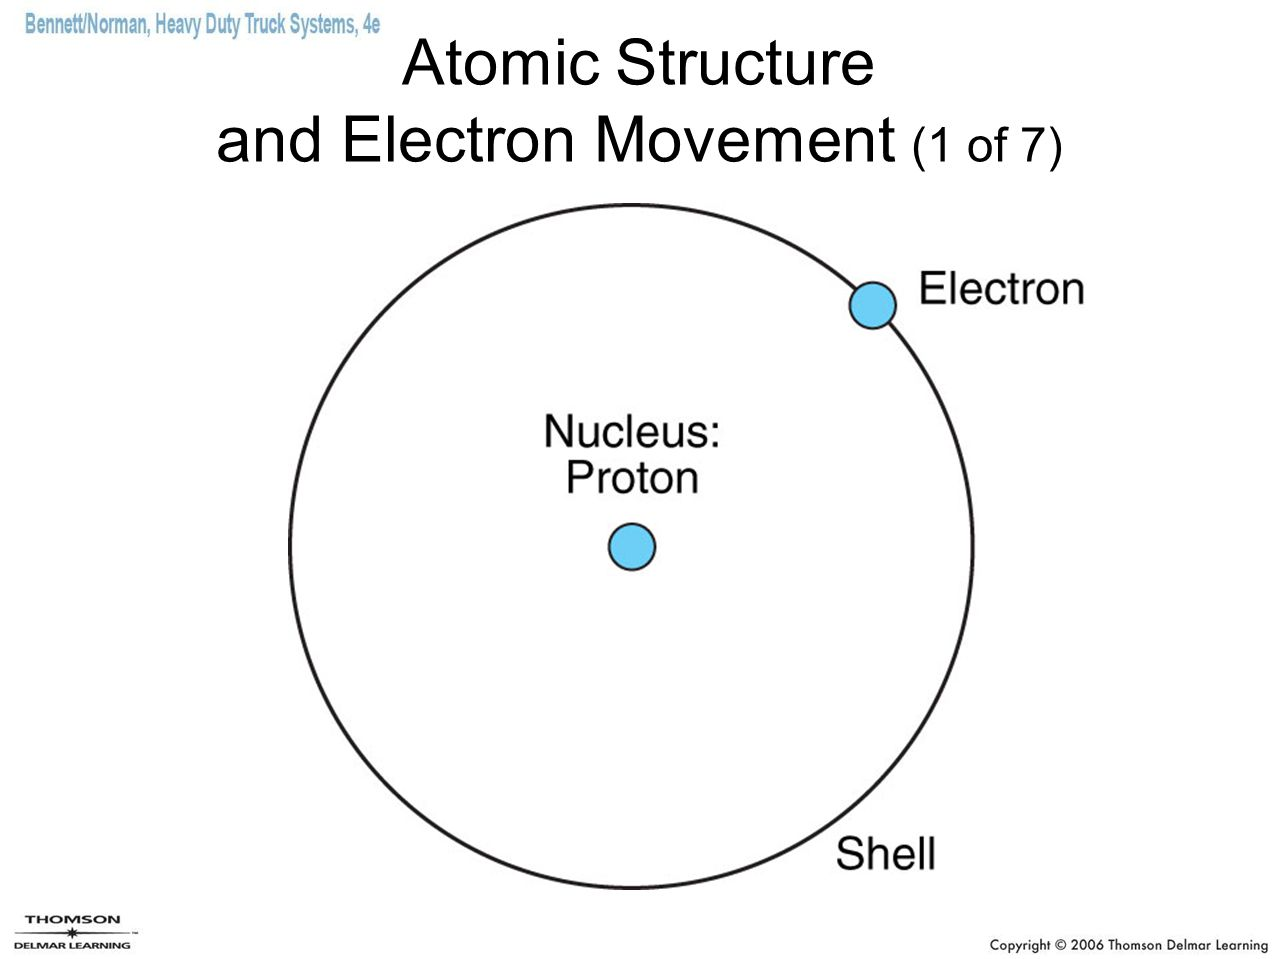 Atomic Structure and Electron Movement (1 of 7)